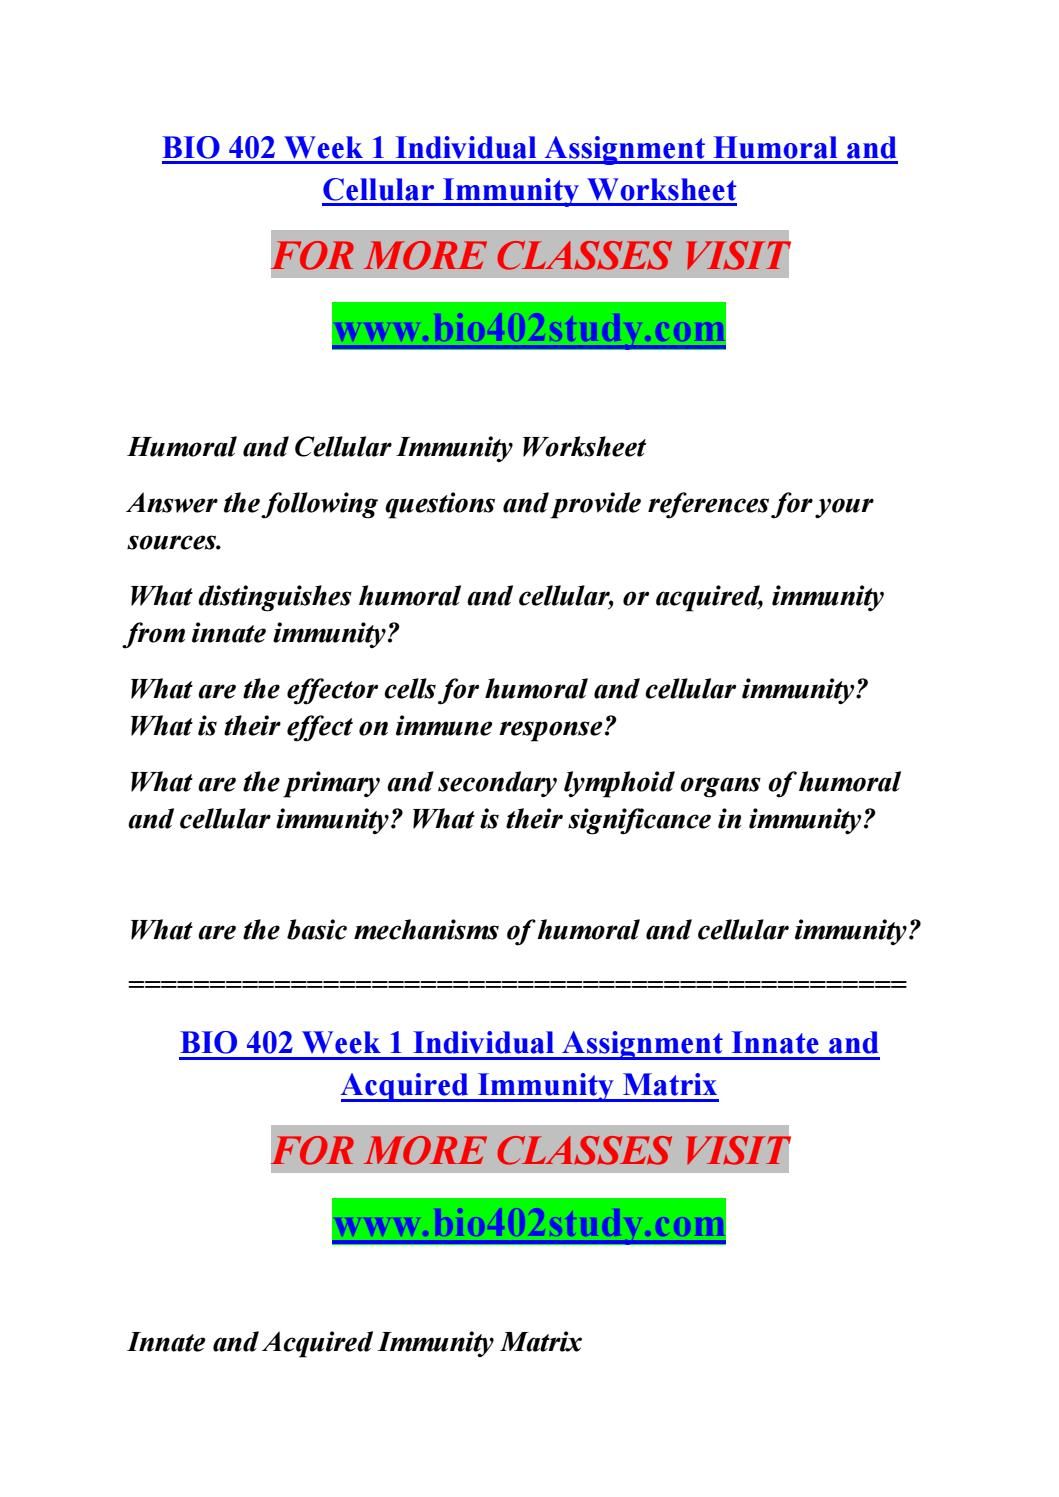 Bio 402 week 1 individual assignment humoral and cellular ...